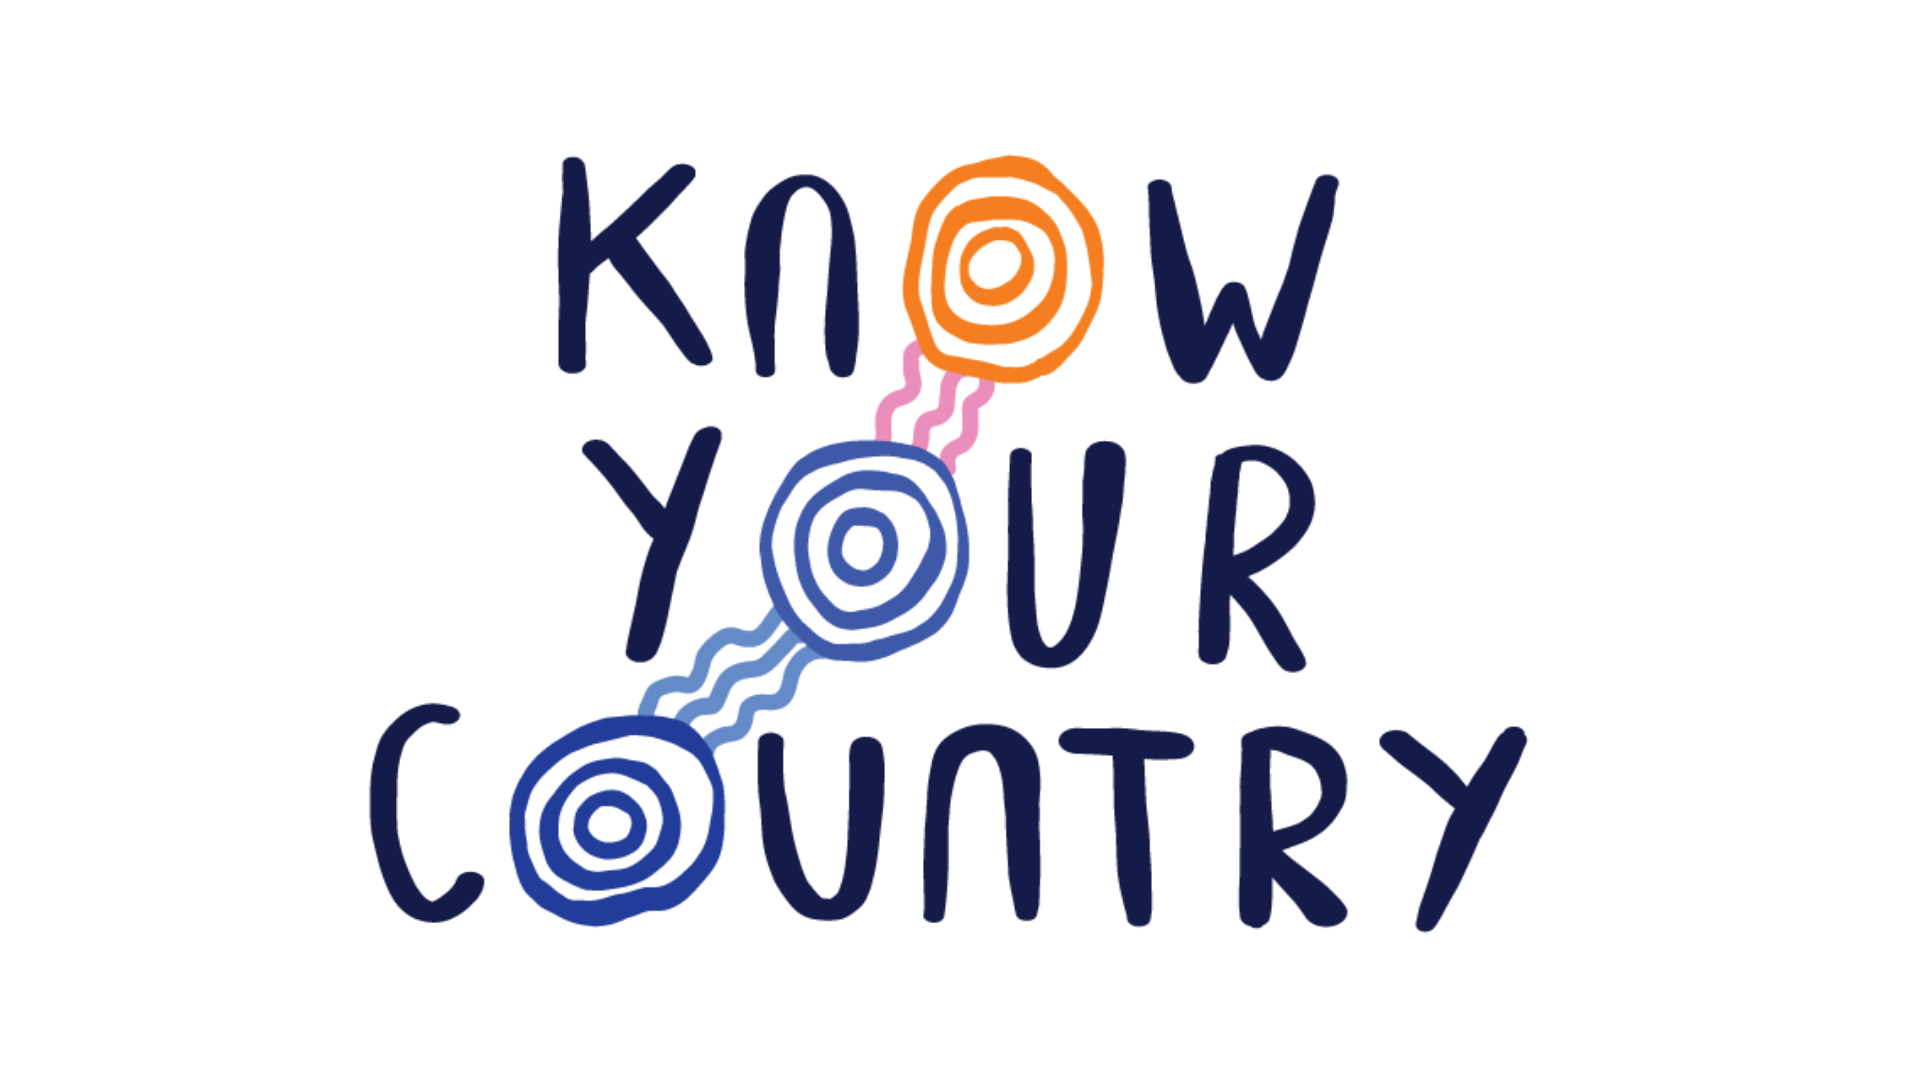 Know Your Country campaign